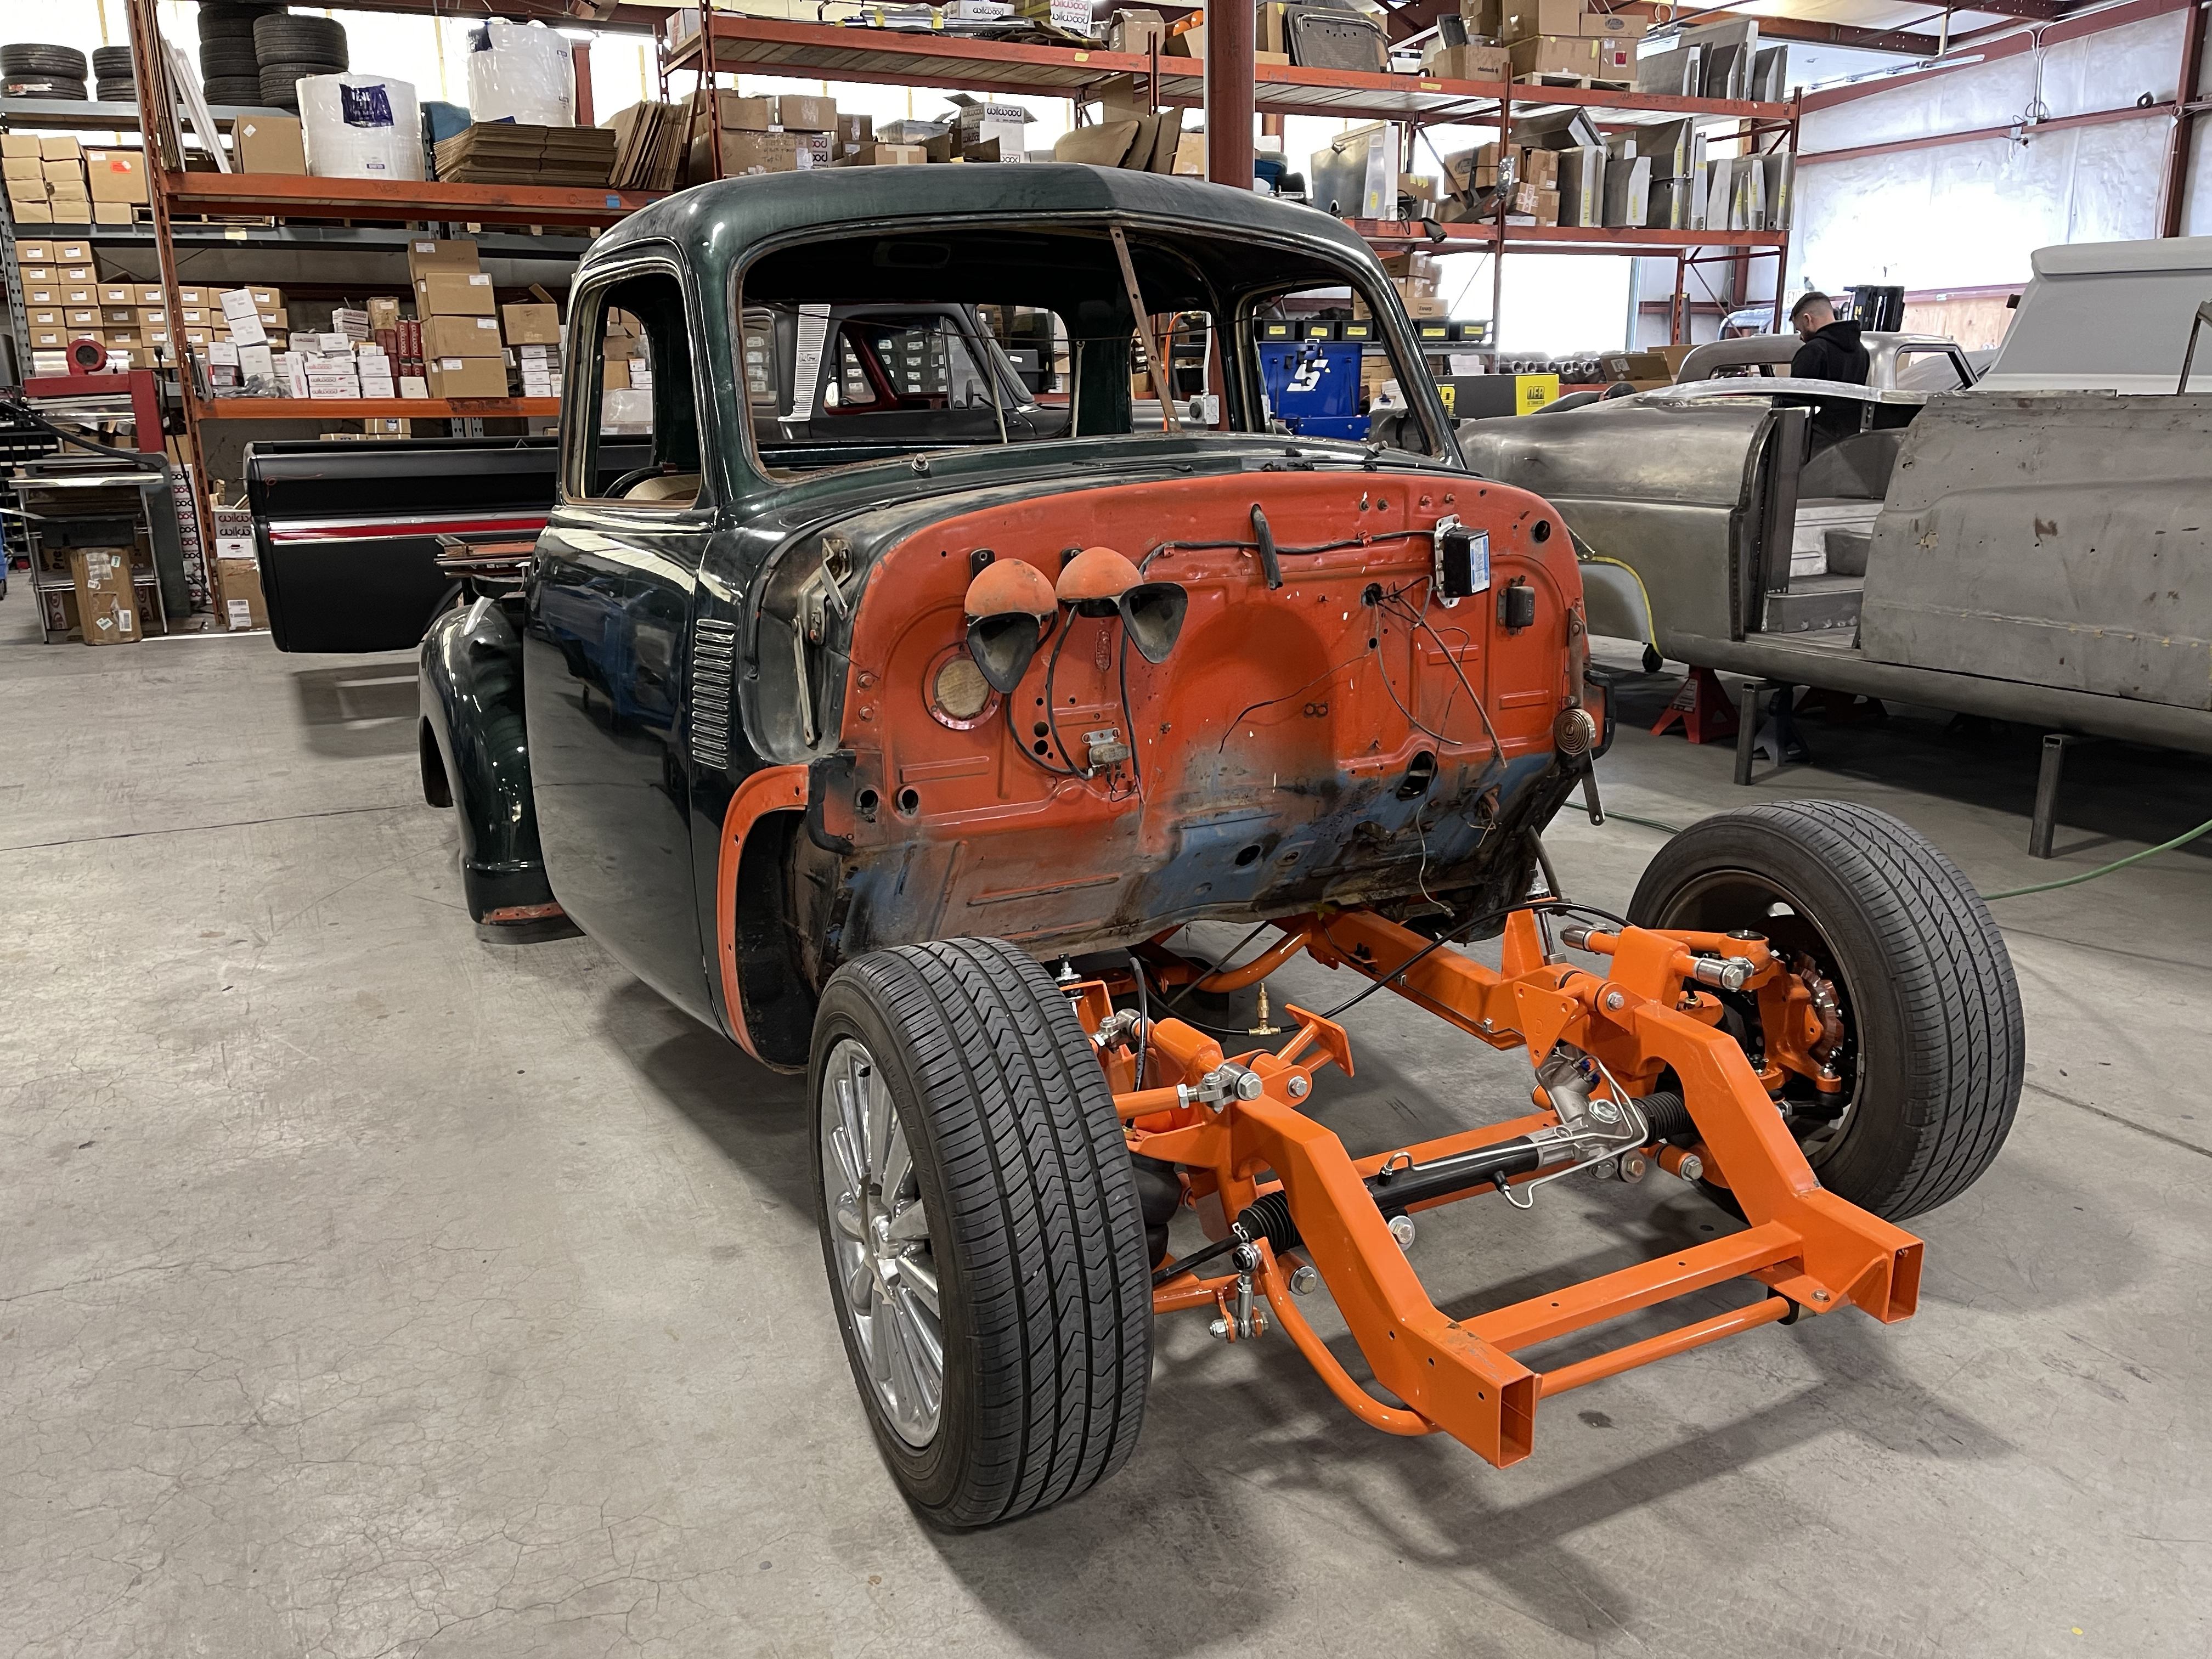 scotts-hotrods-50-chevy-project-truck-2